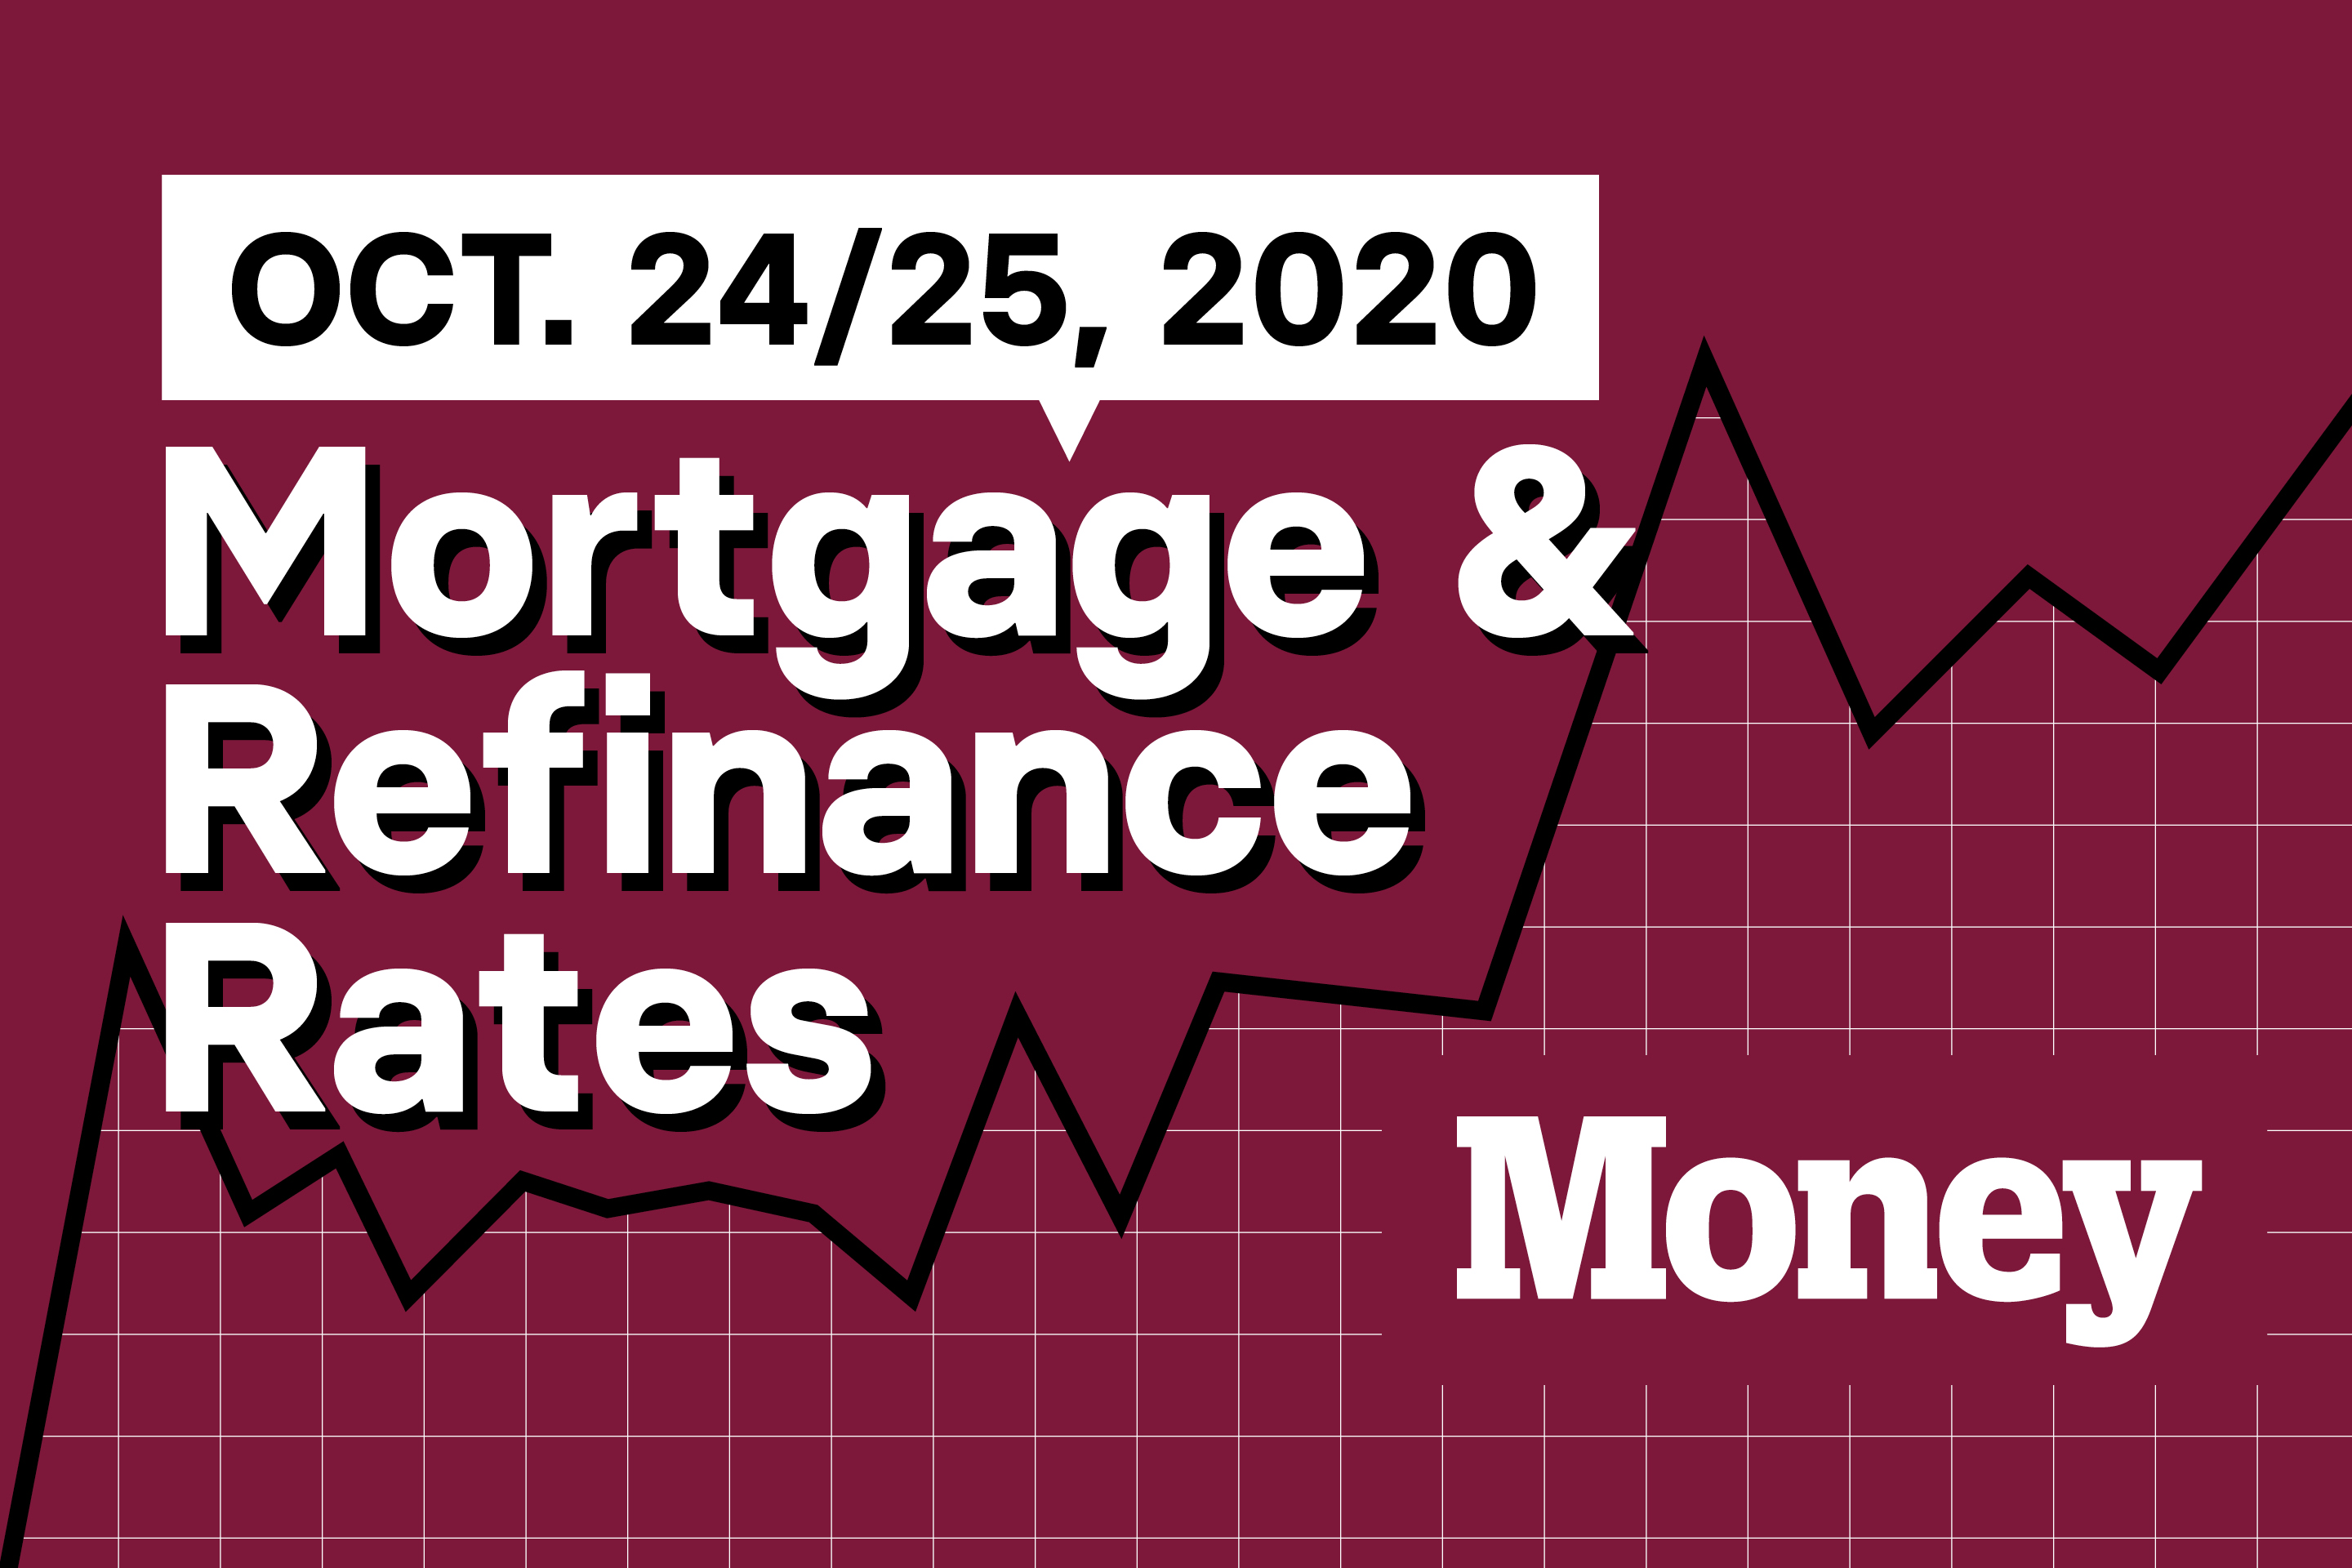 Today's Mortgage and Refinance Rates for October 24 and 25